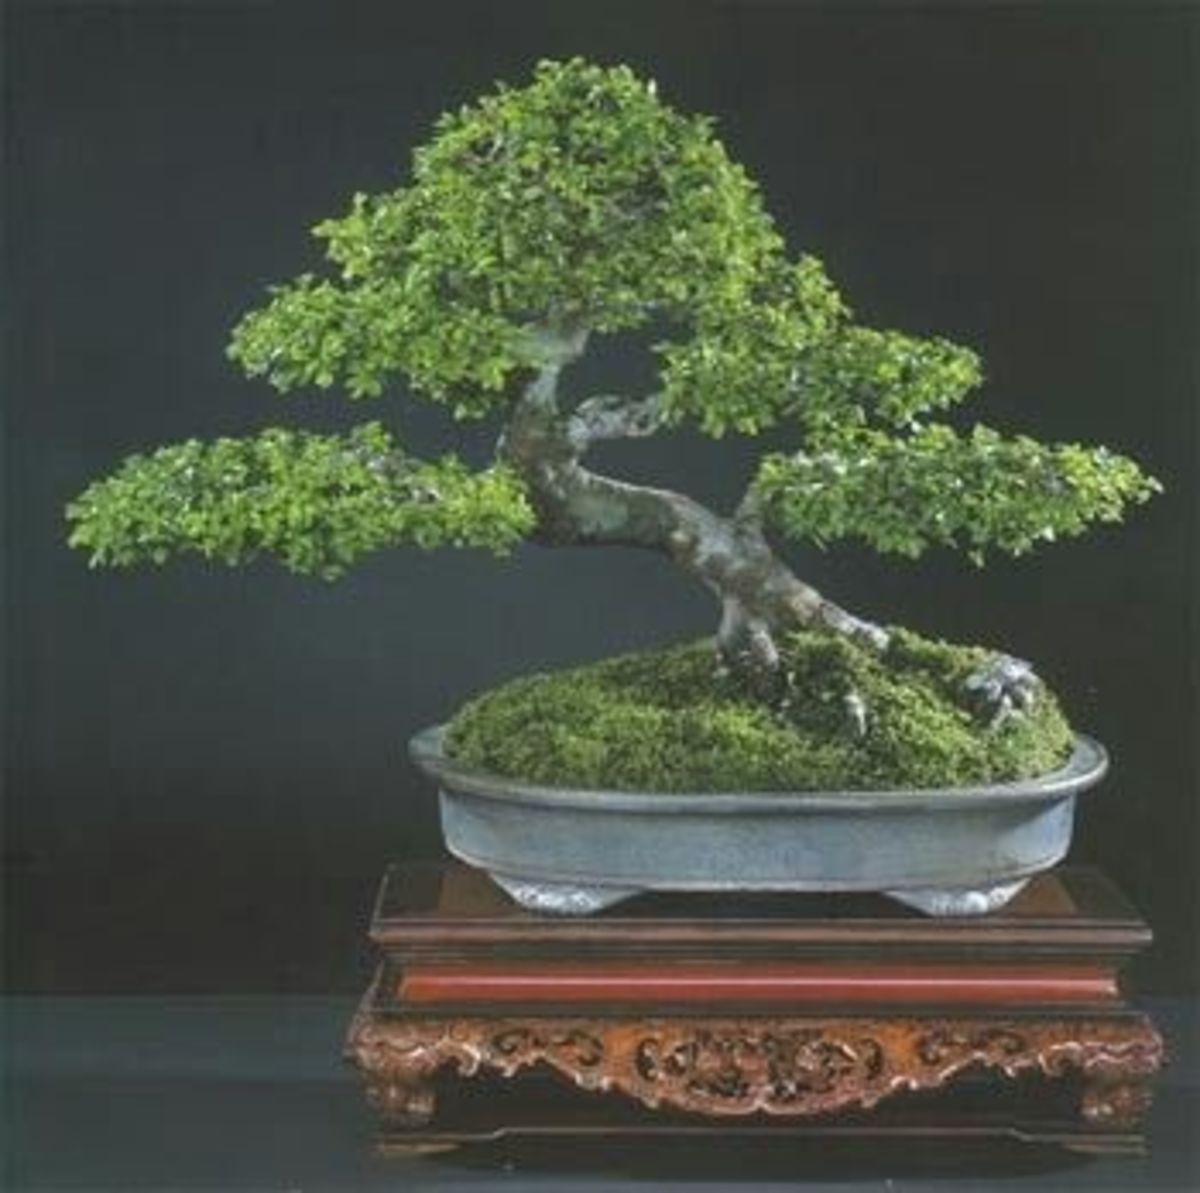 This article will help you take care of your bonsai tree like a pro.